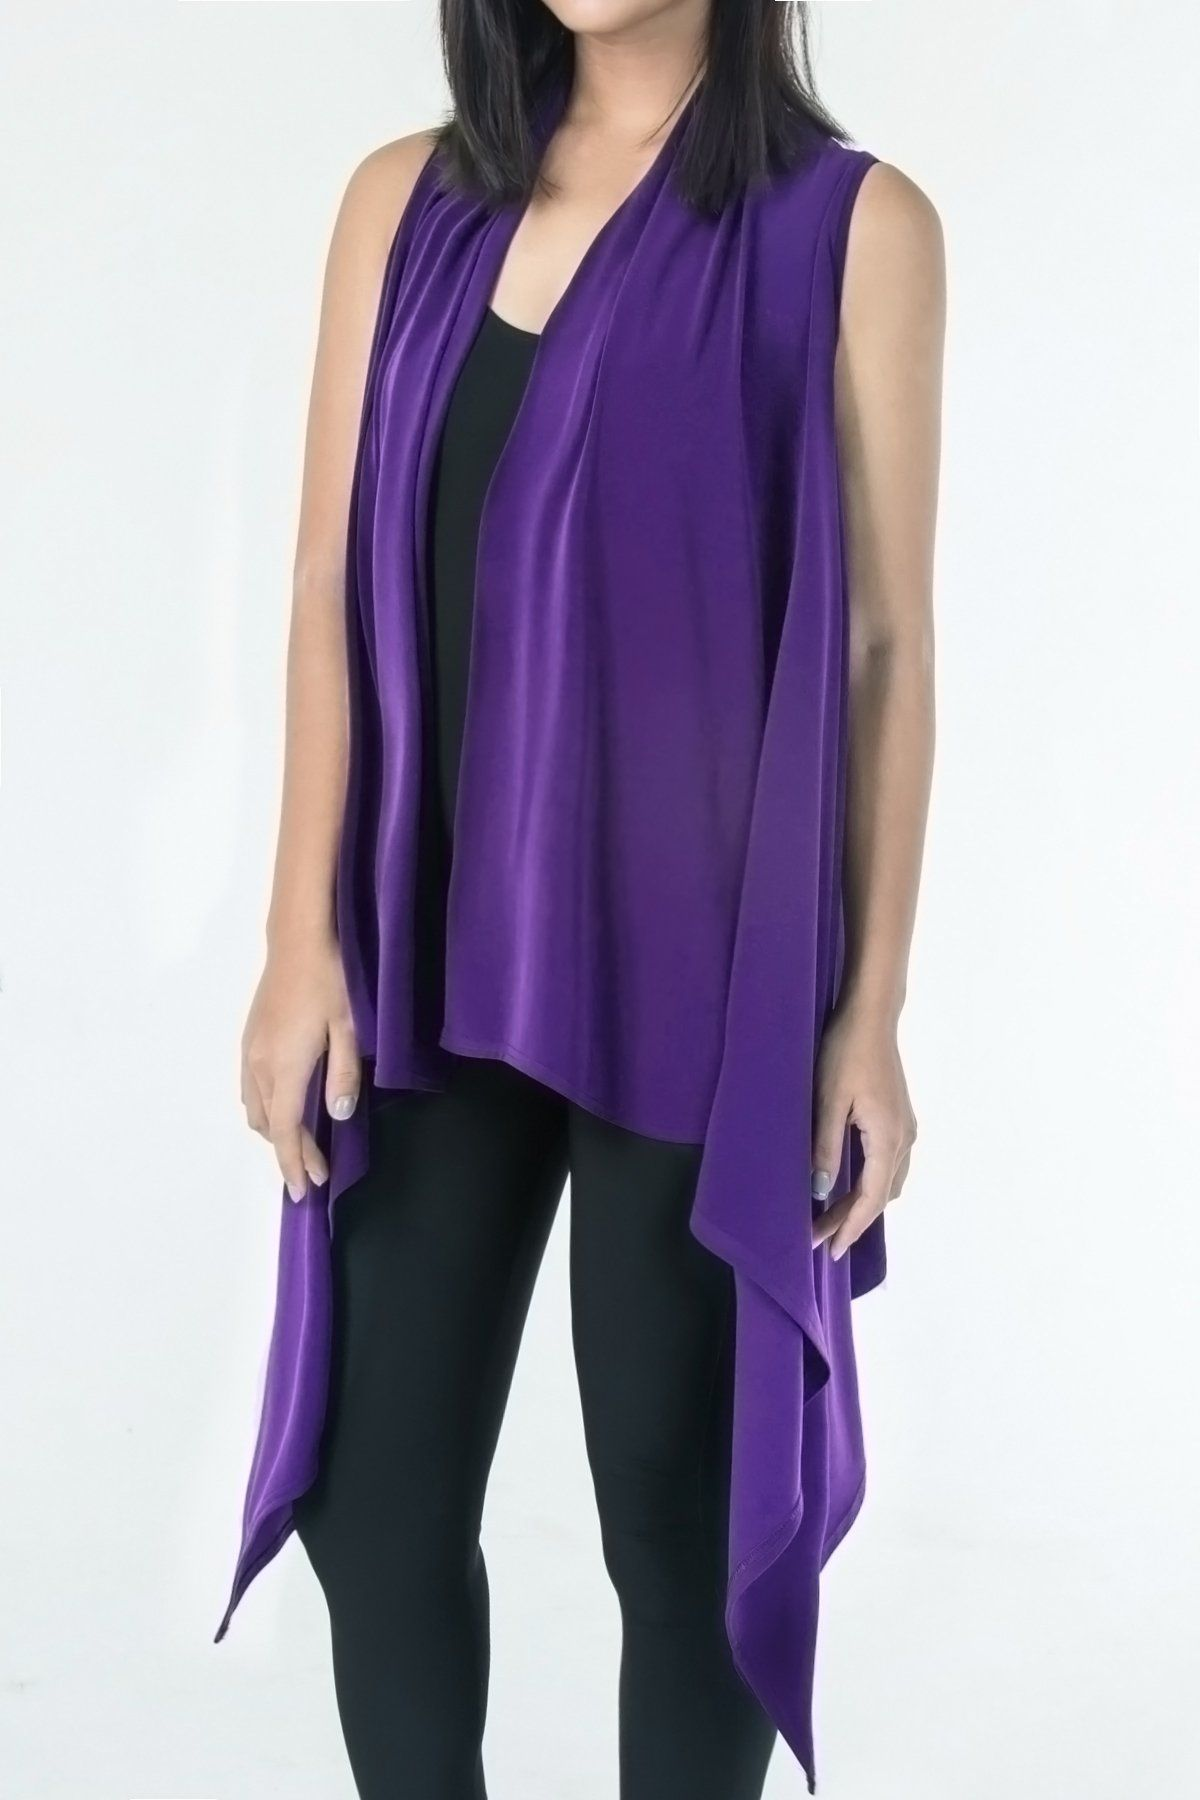 Two Way Layering Vest - Women's Clothing -ROSARINI